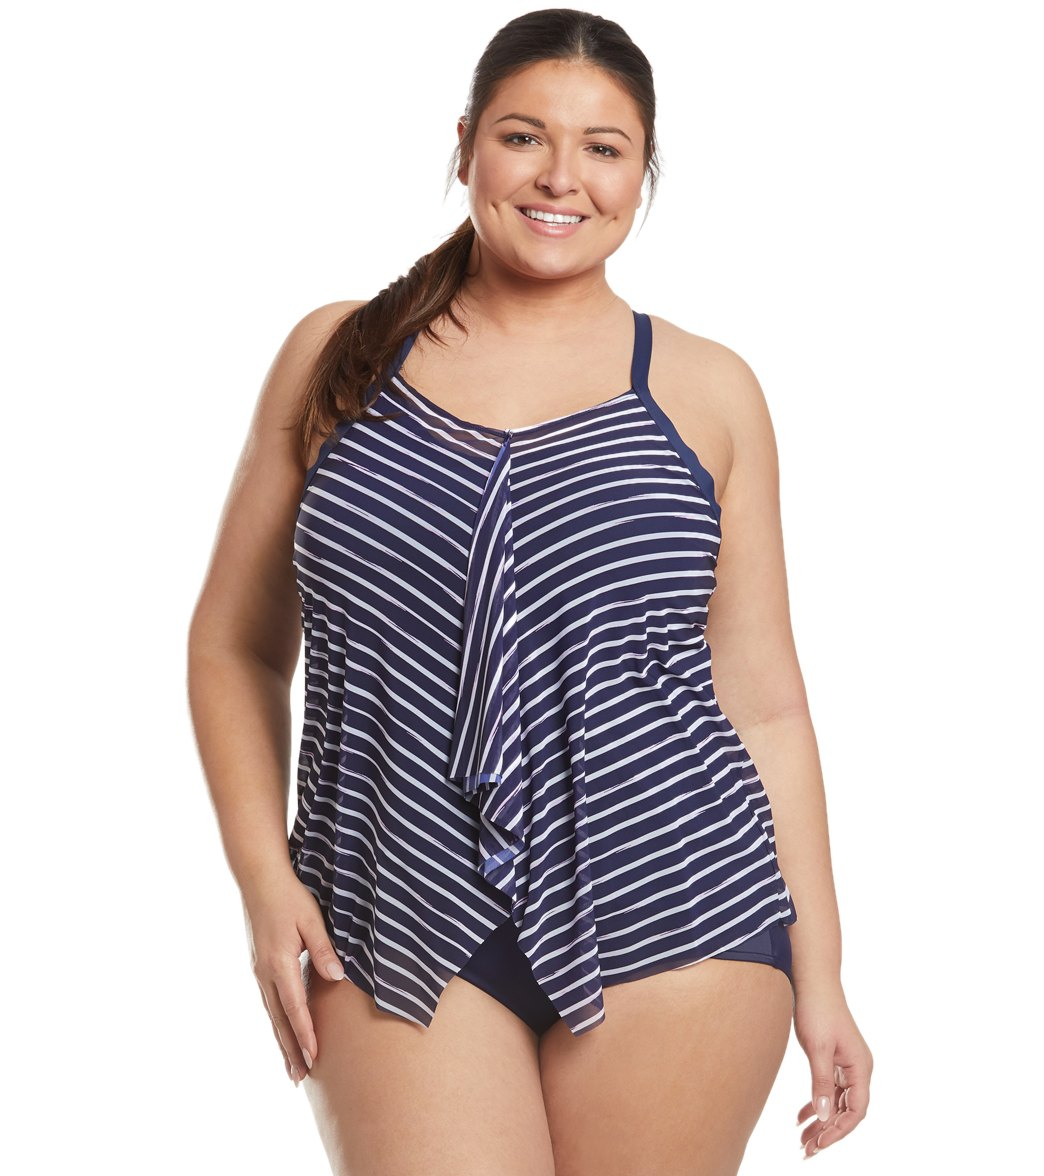 a9f13a7d2a579 Beach House Plus Size Shoreline Kerry Tankini Top at SwimOutlet.com - Free  Shipping